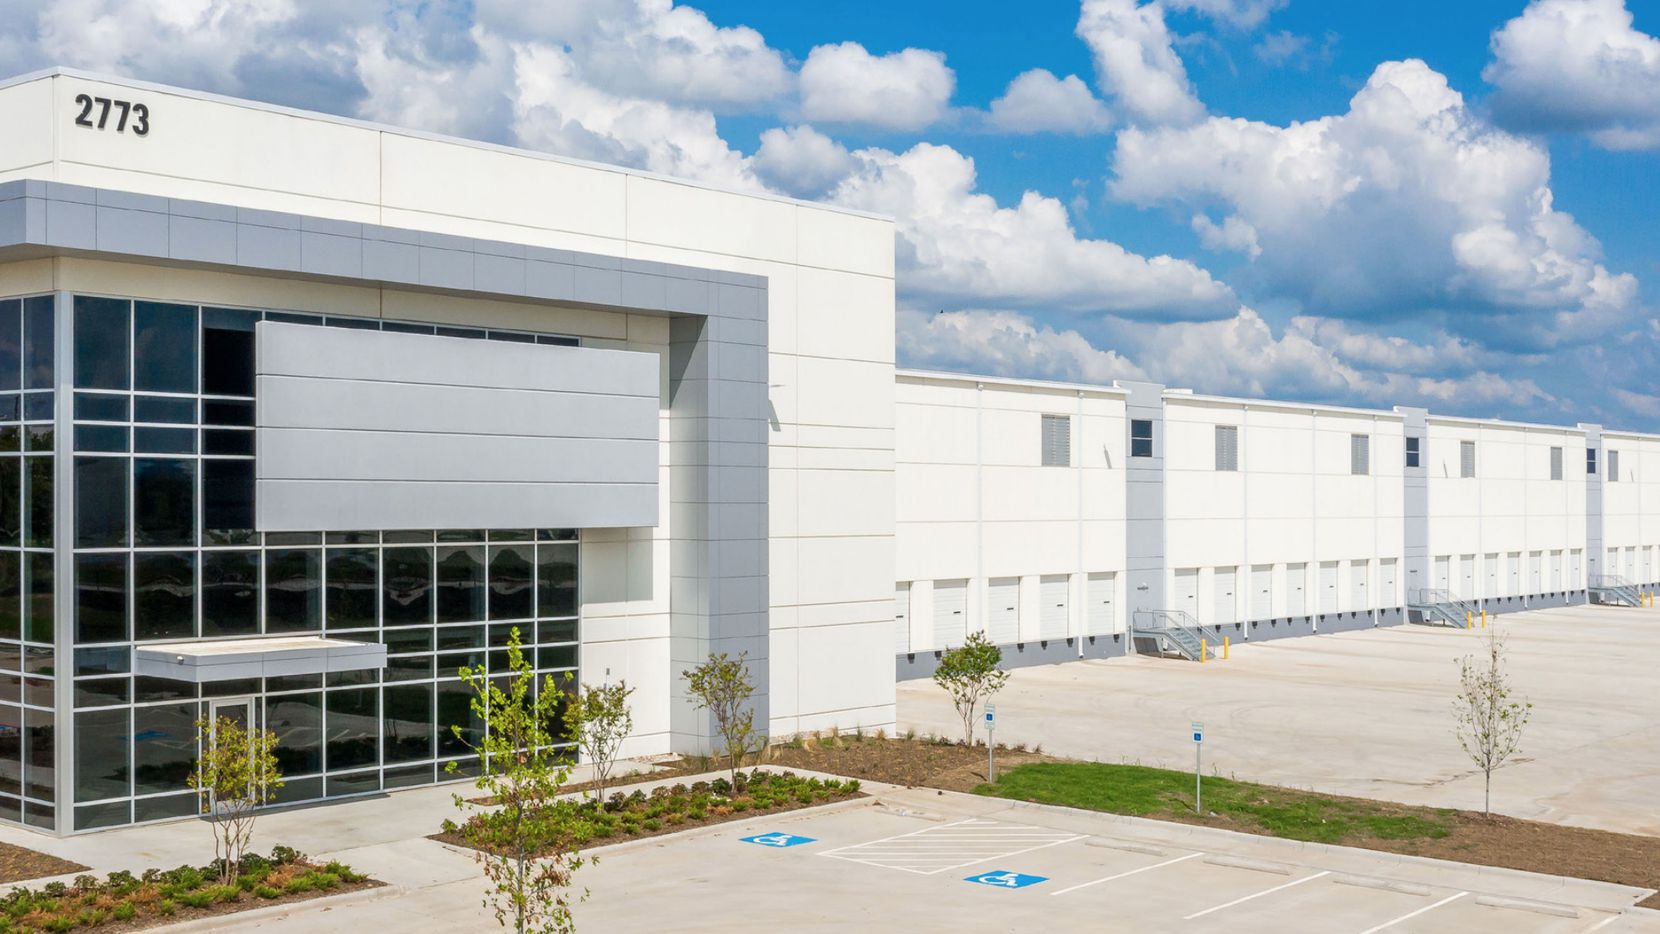 JLL Income Property Trust owns the new building on State Highway 114.